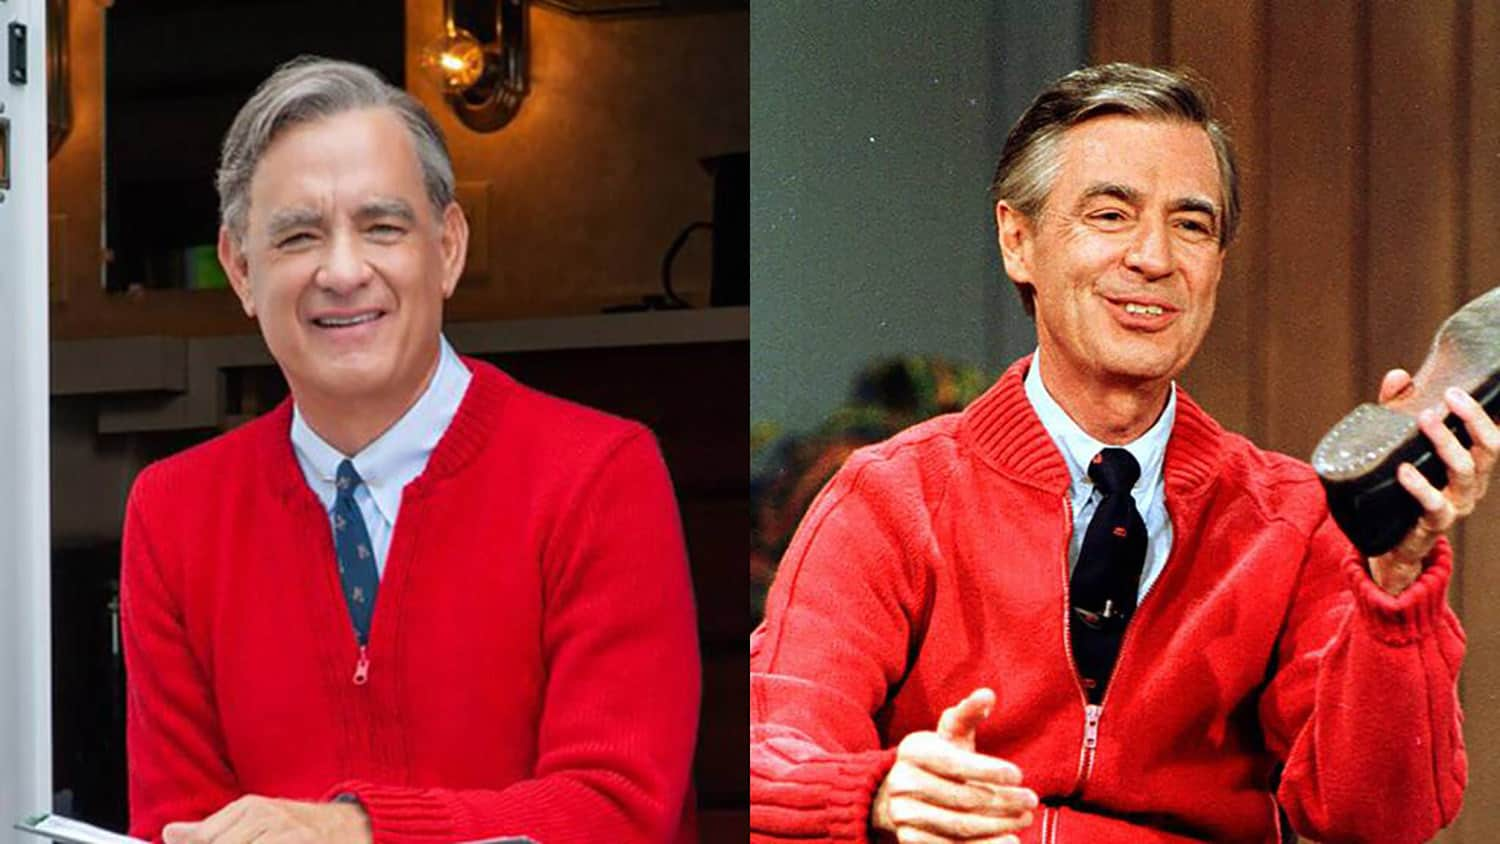 How Mr Rogers Moved Tom Hanks To Tears Behind The Film A Beautiful Day In The Neighborhood Sixty And Me